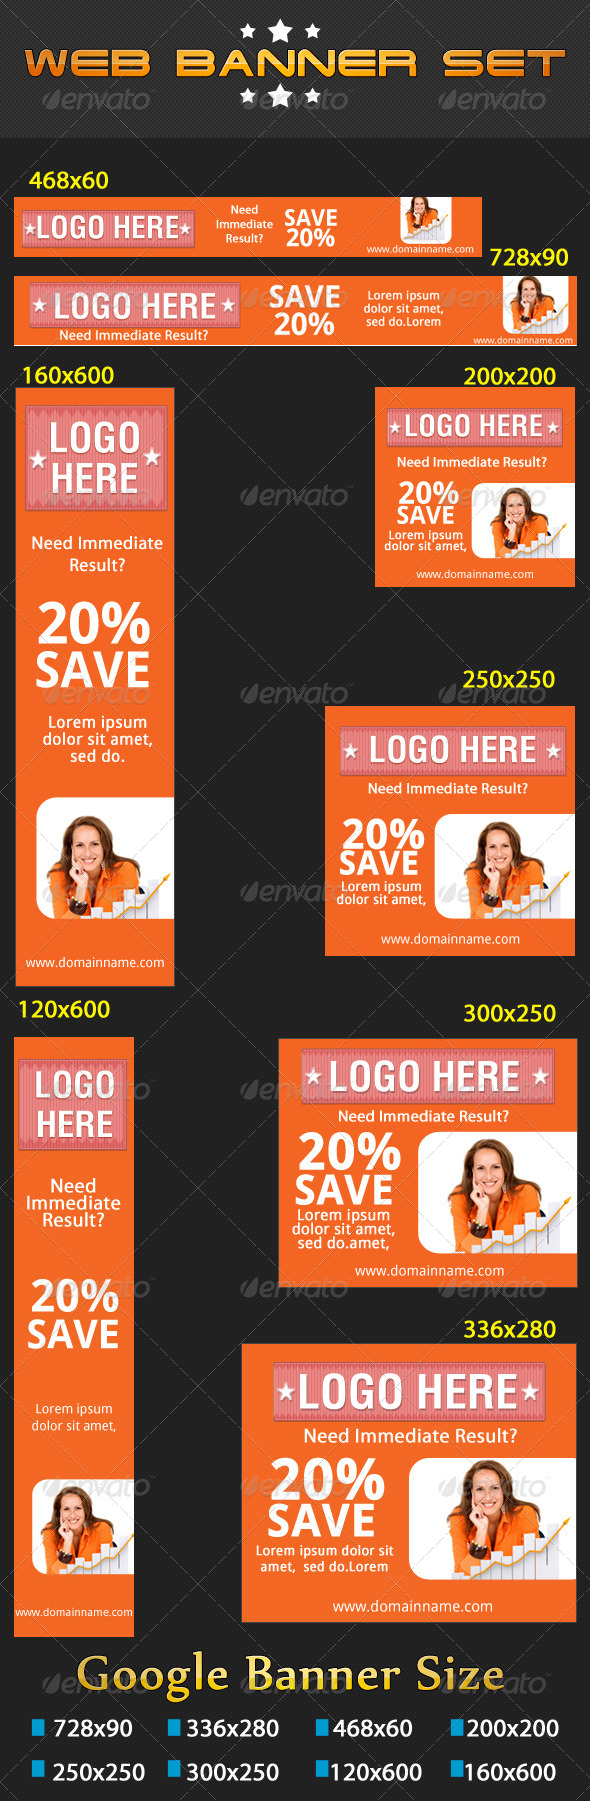 Web Banners Set VOL-01 - Banners & Ads Web Elements